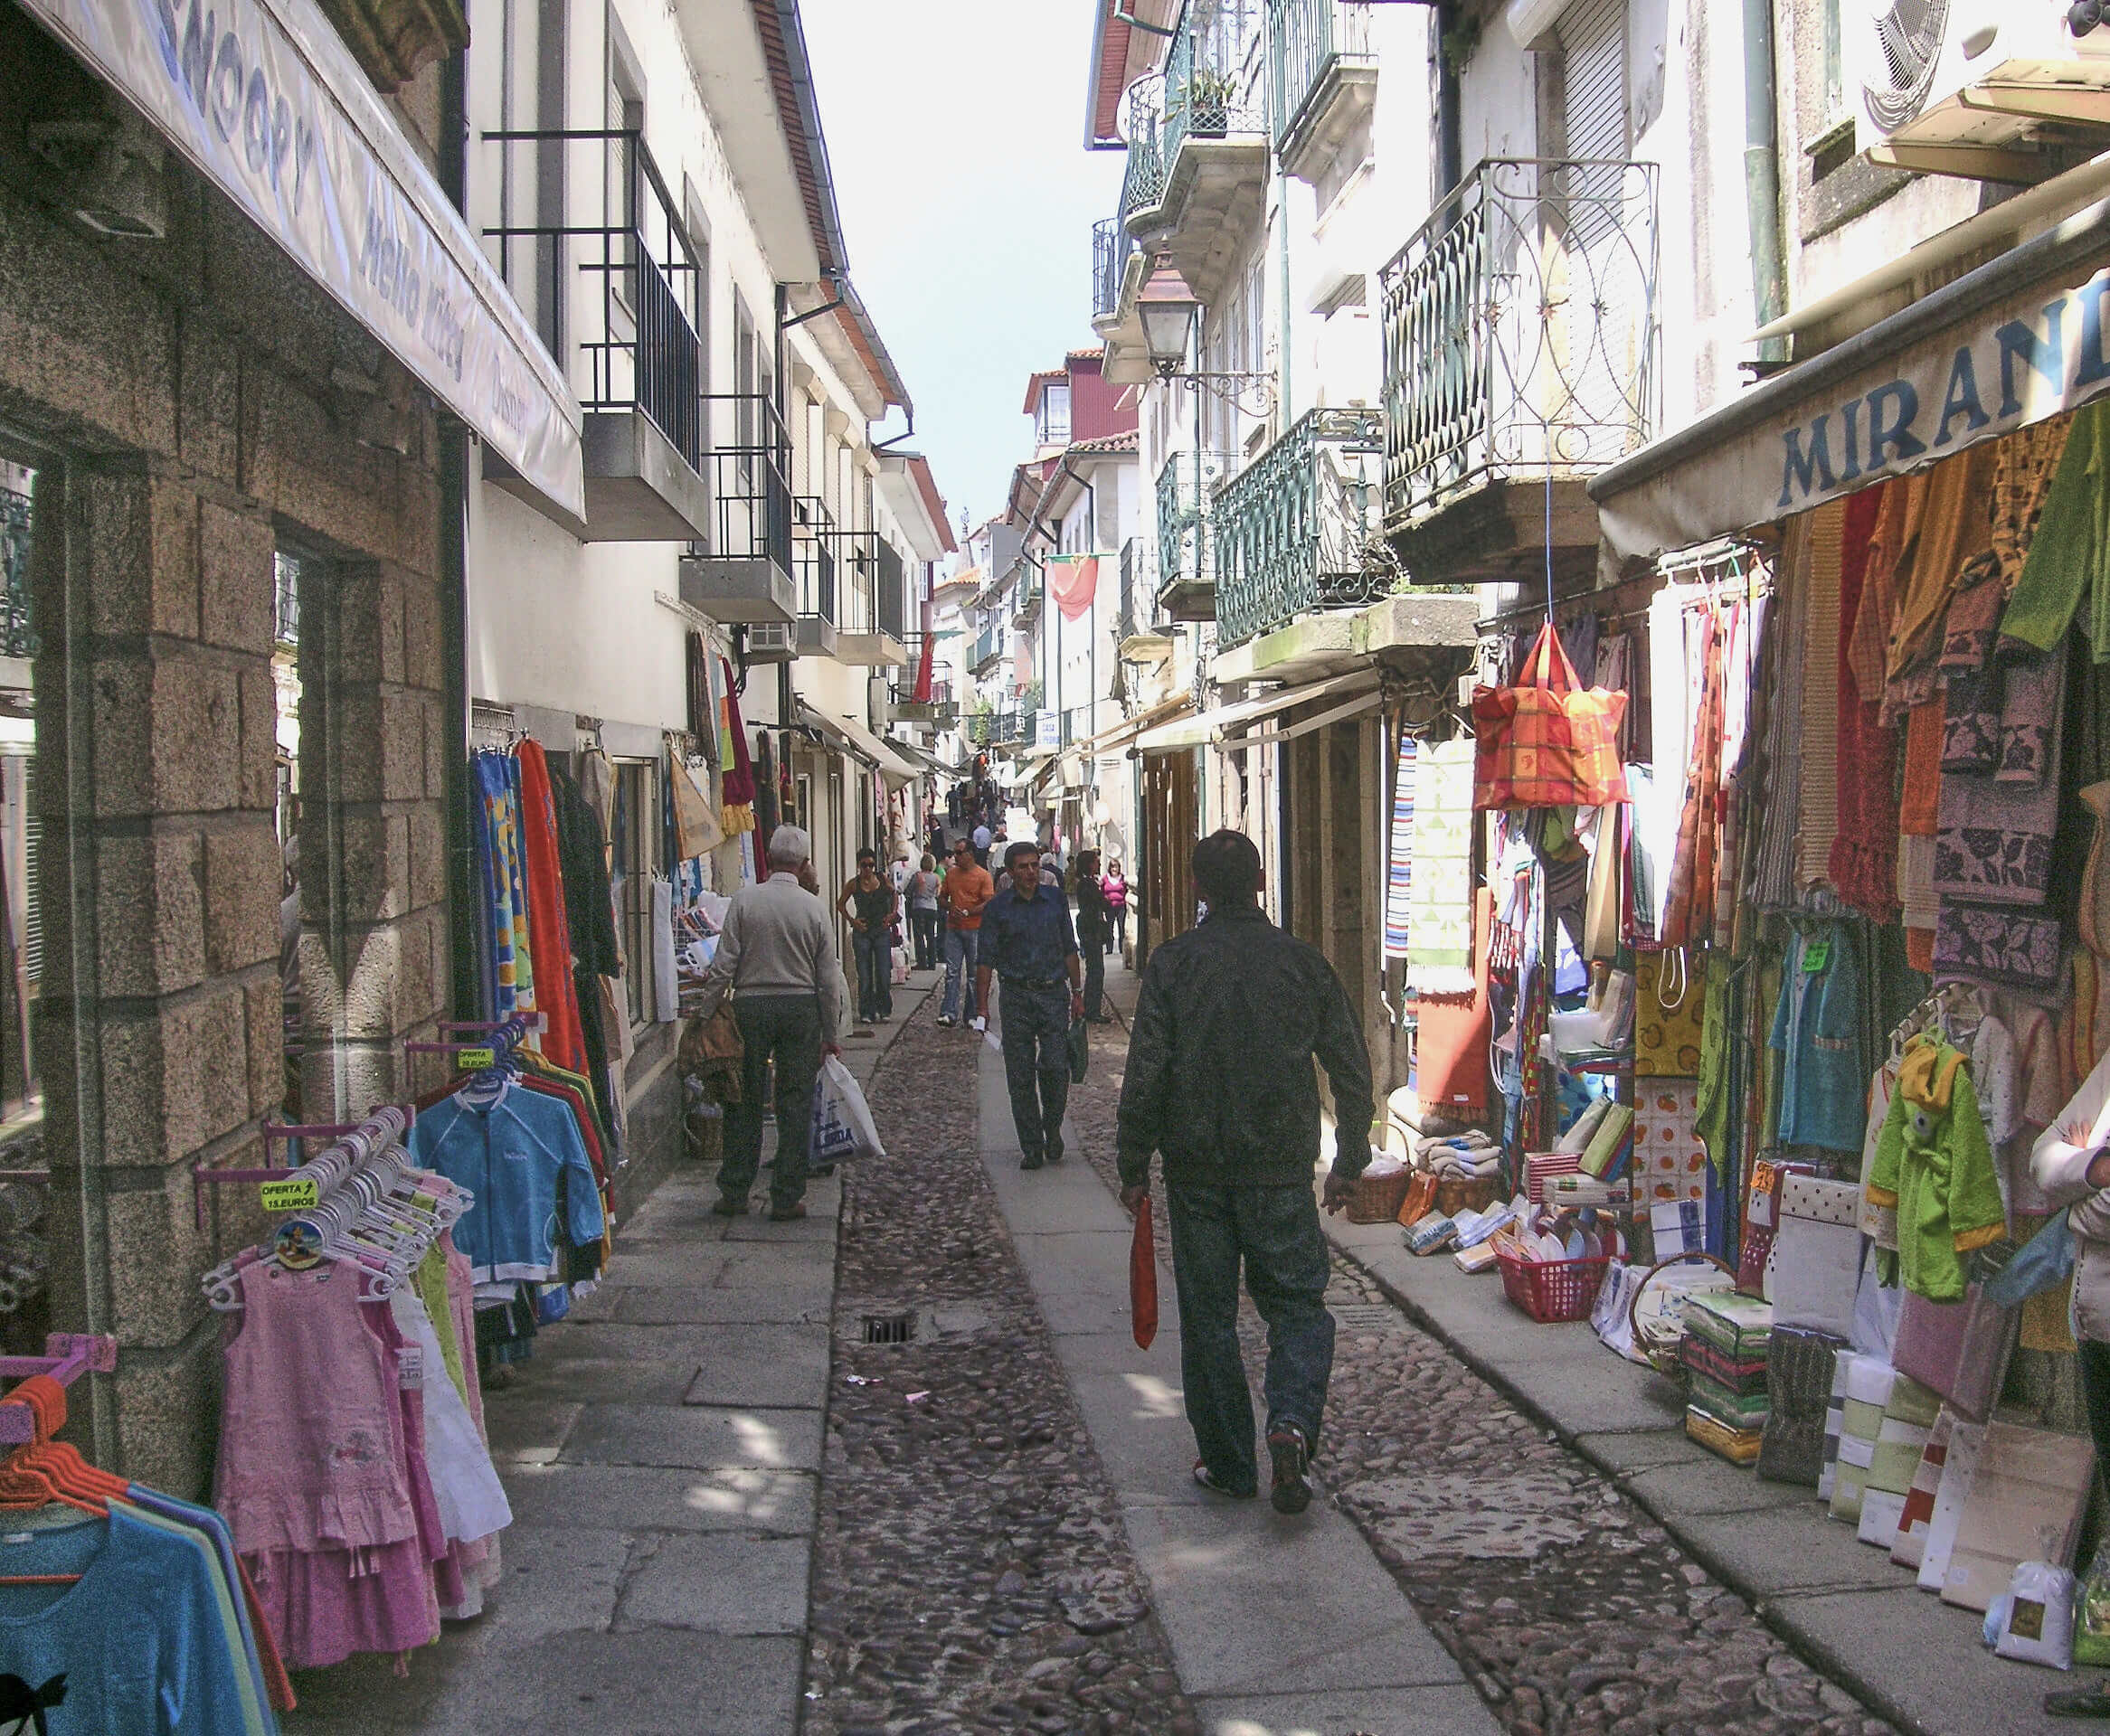 Colurful towels and linen shops in Valenca, Portugal